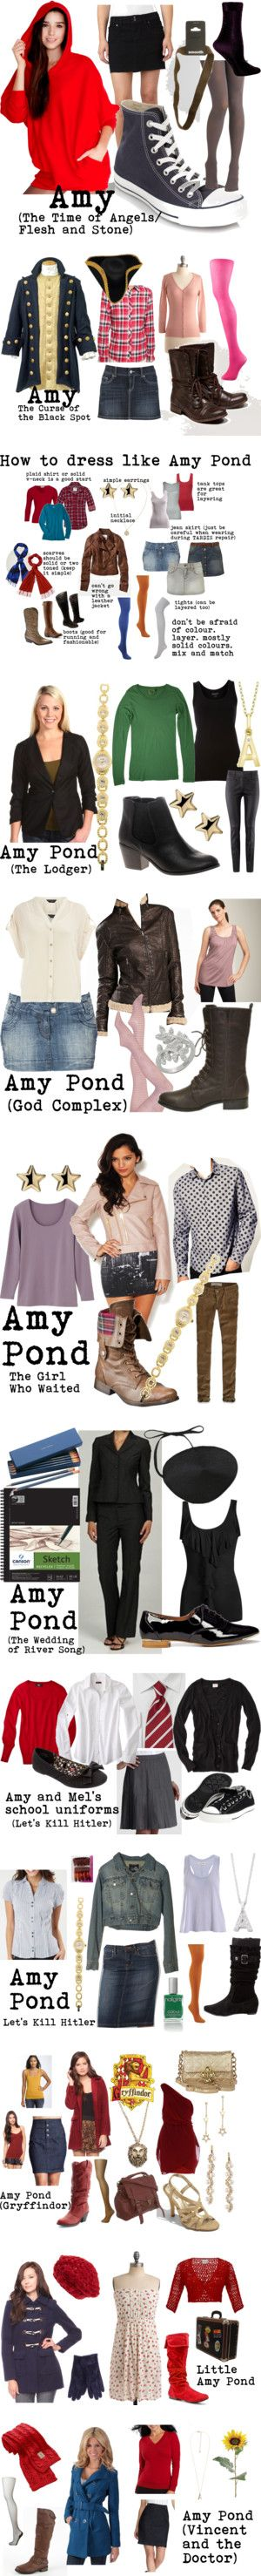 """Amy Pond"" by doctorwhodressing ❤ liked on Polyvore THANK YOU THANK YOU :)"